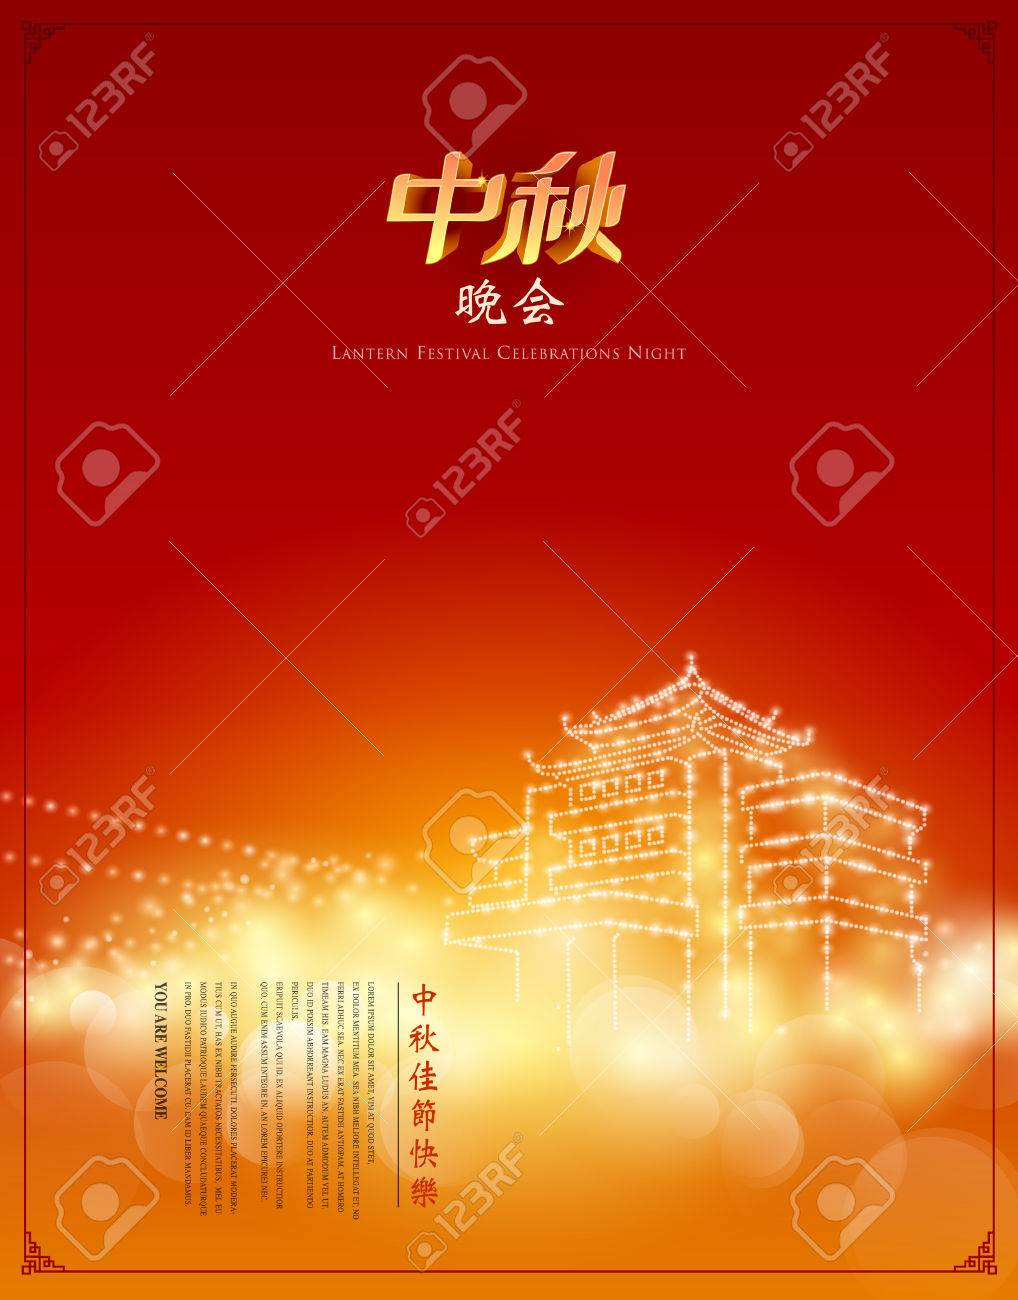 Chinese mid autumn festival background royalty free cliparts chinese mid autumn festival background stock vector 44114717 kristyandbryce Choice Image